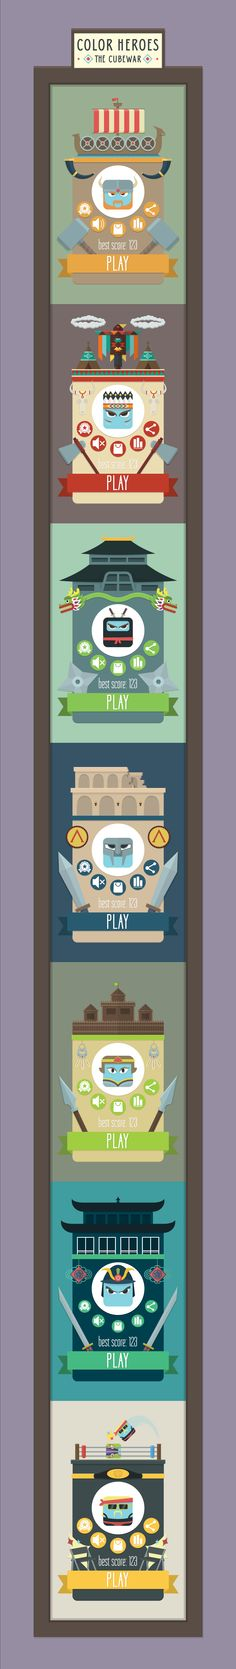 COLOR HEROES: THE CUBE WAR - characters showcase on Behance